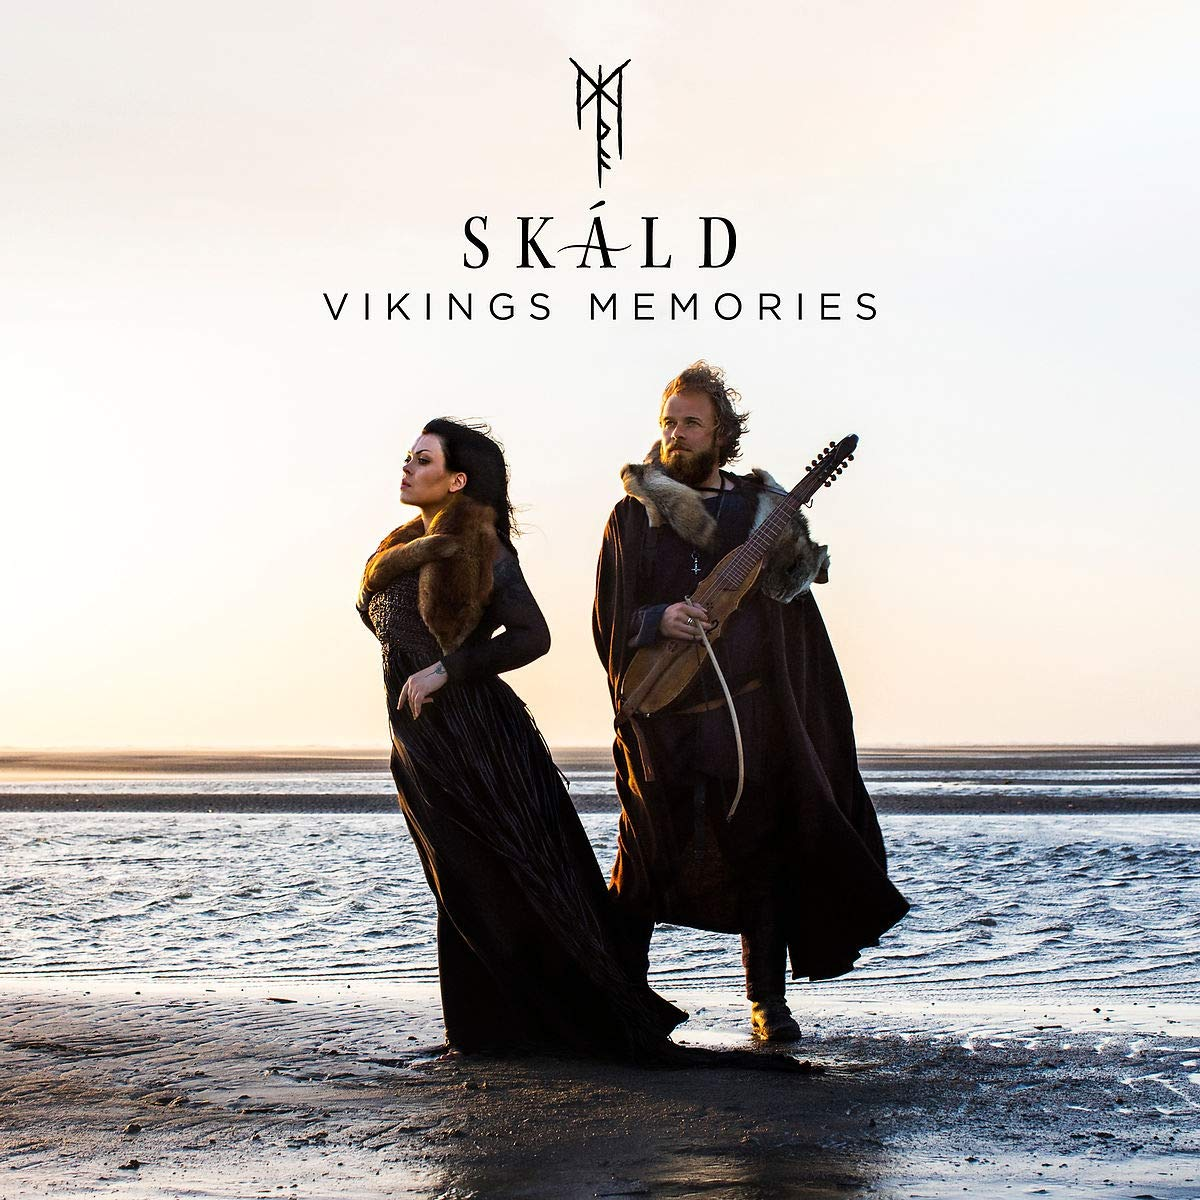 skald viking memories